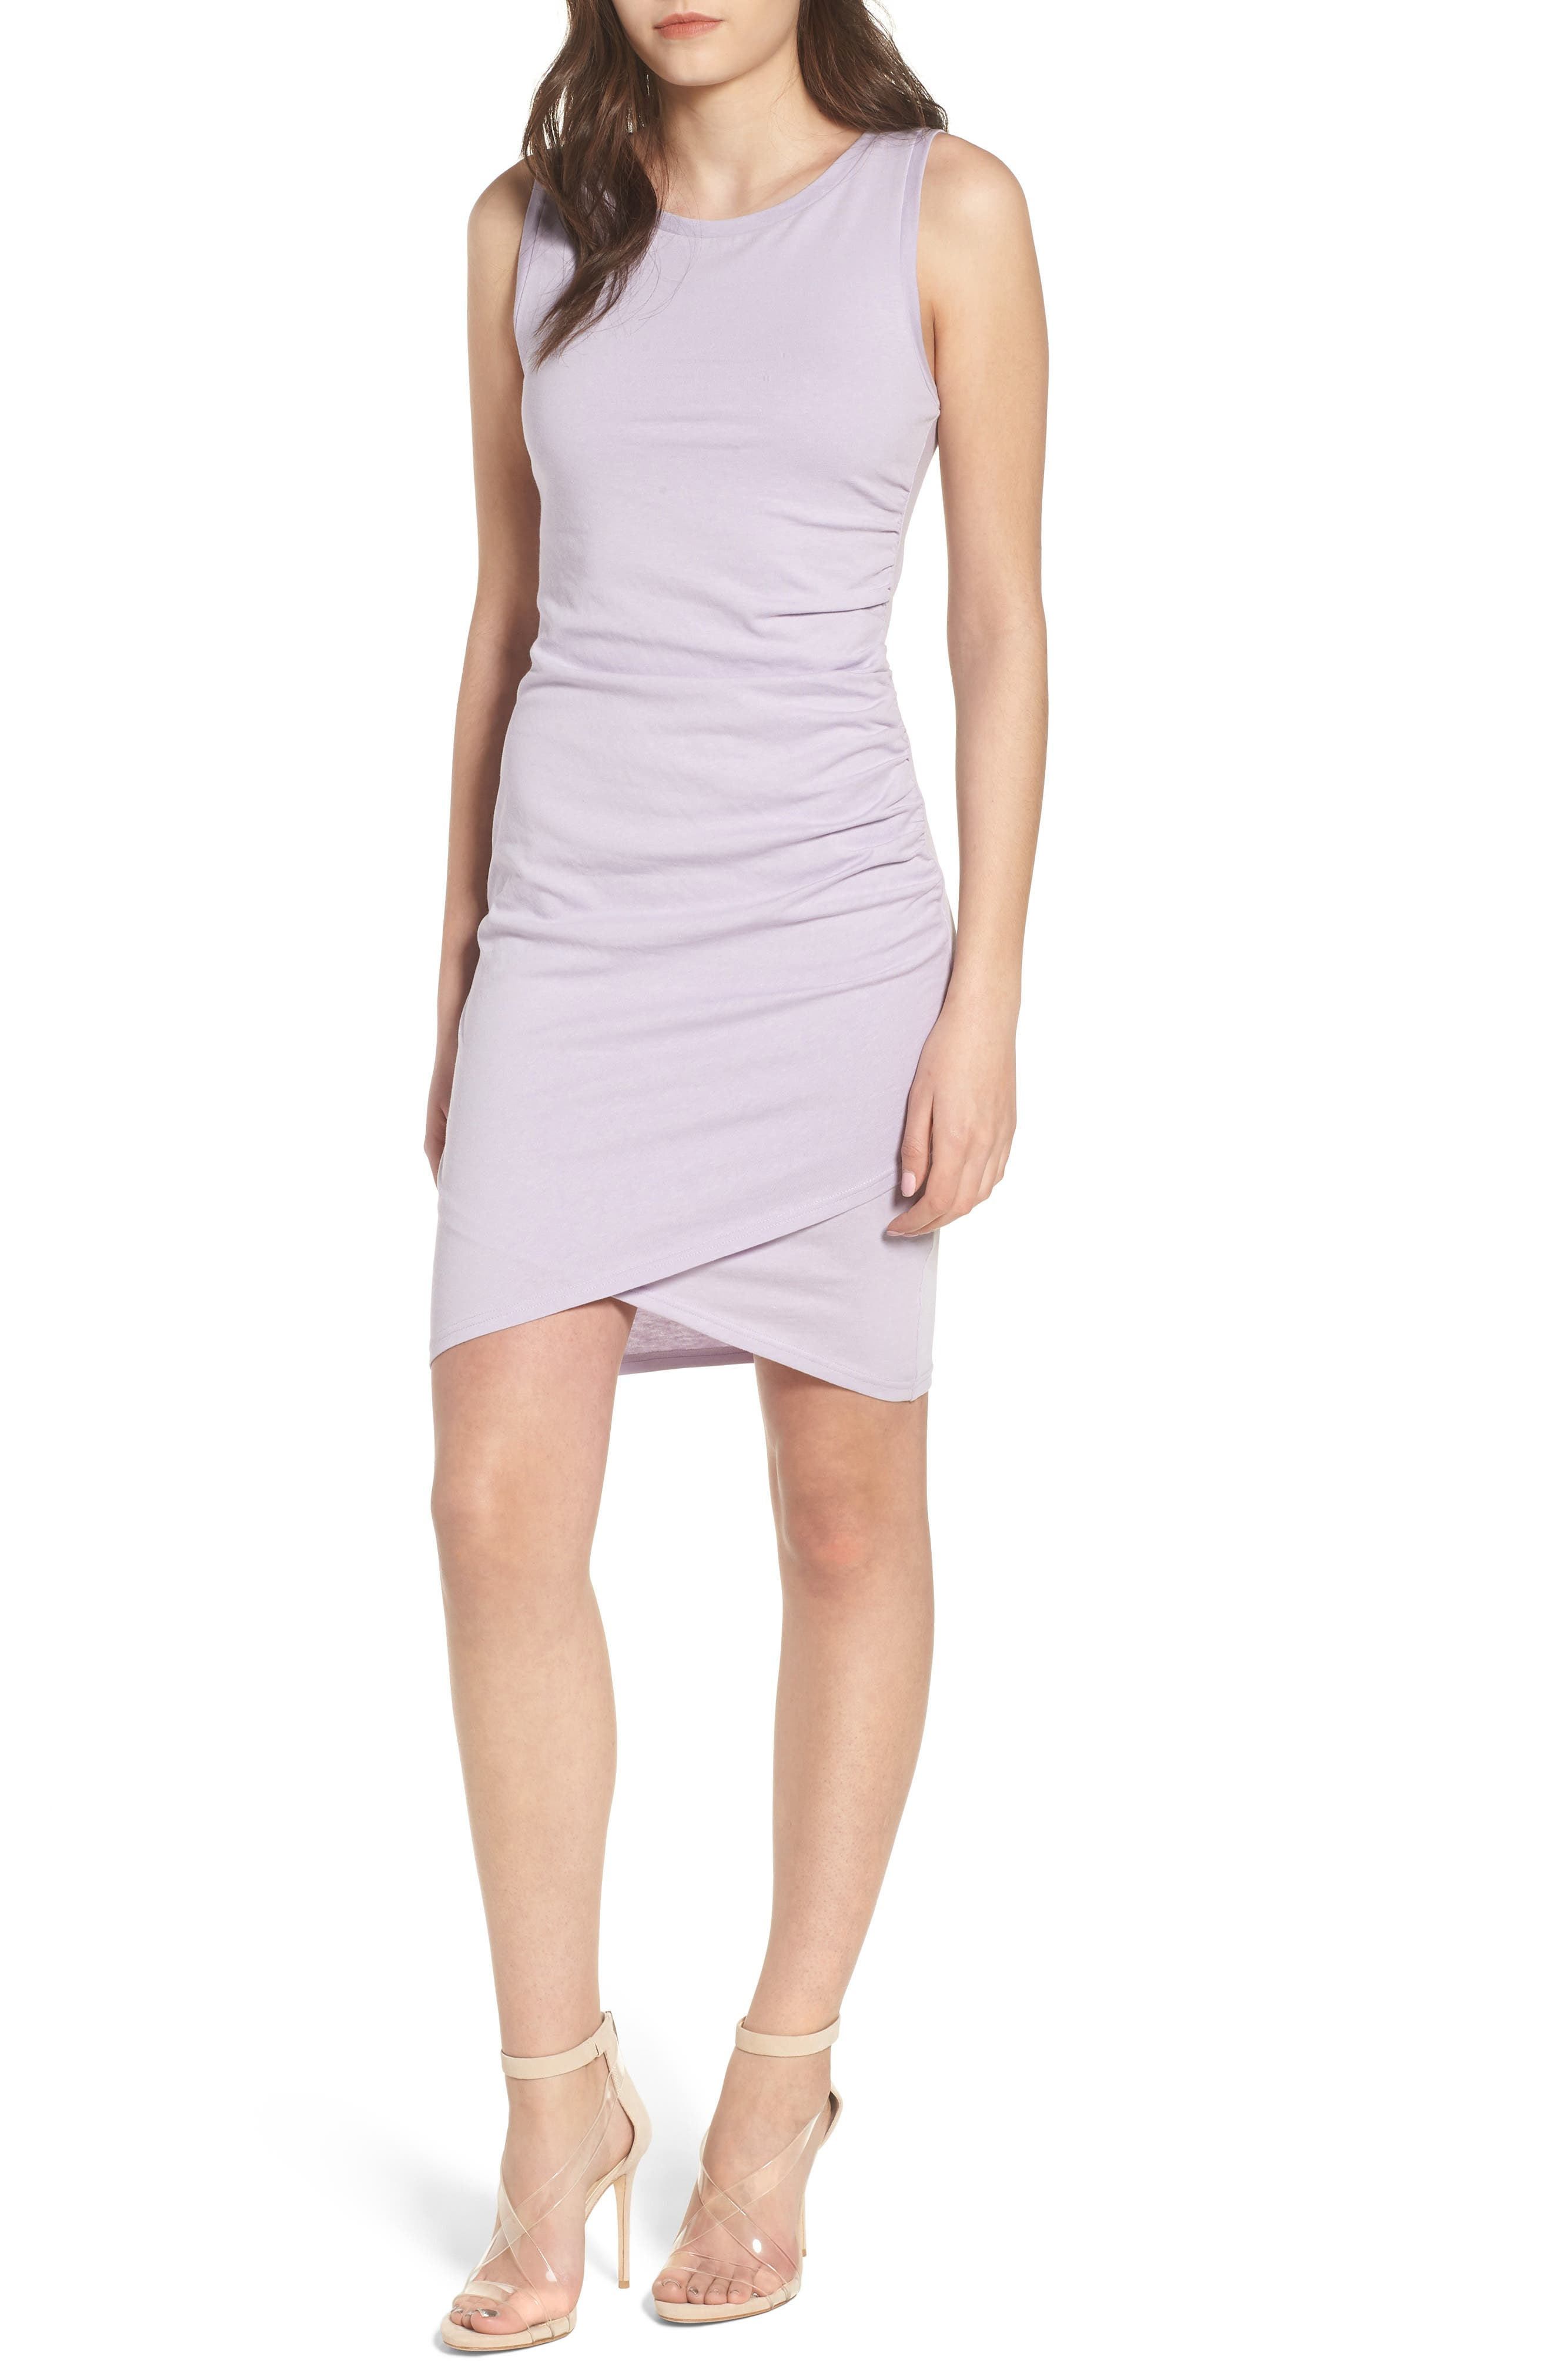 Ruched Body Con Tank Dress by Leith